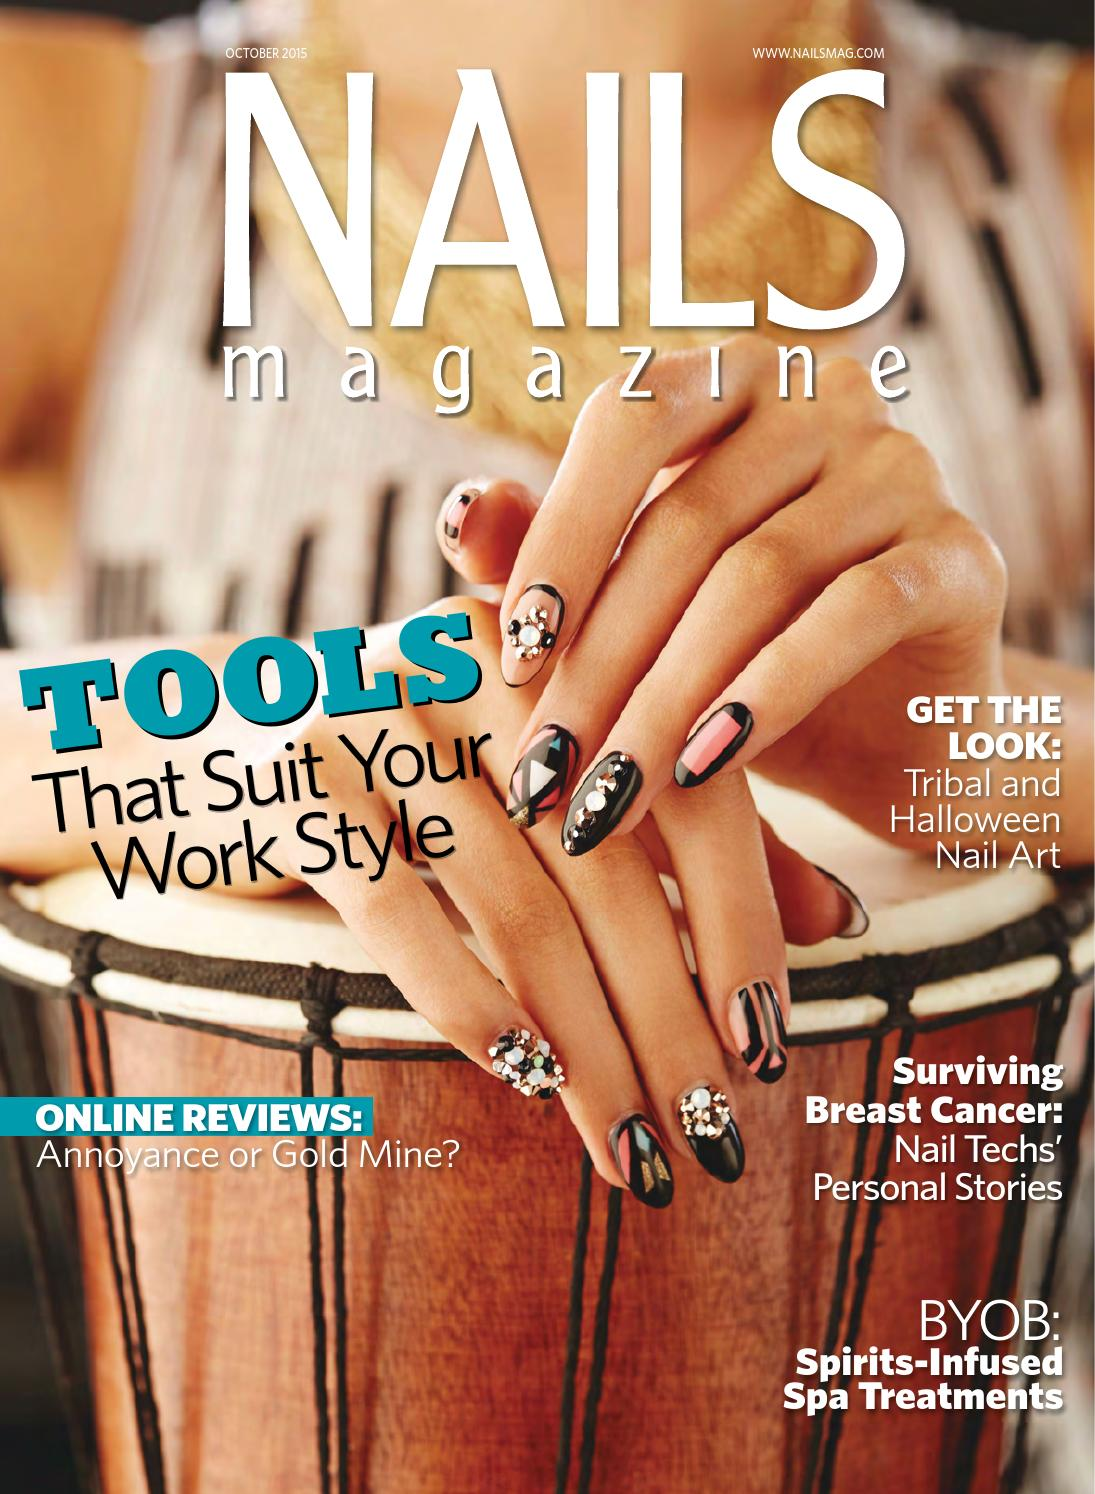 Athyw45ys4e5nails magazine october 20151 by boodolsaqoxz - issuu